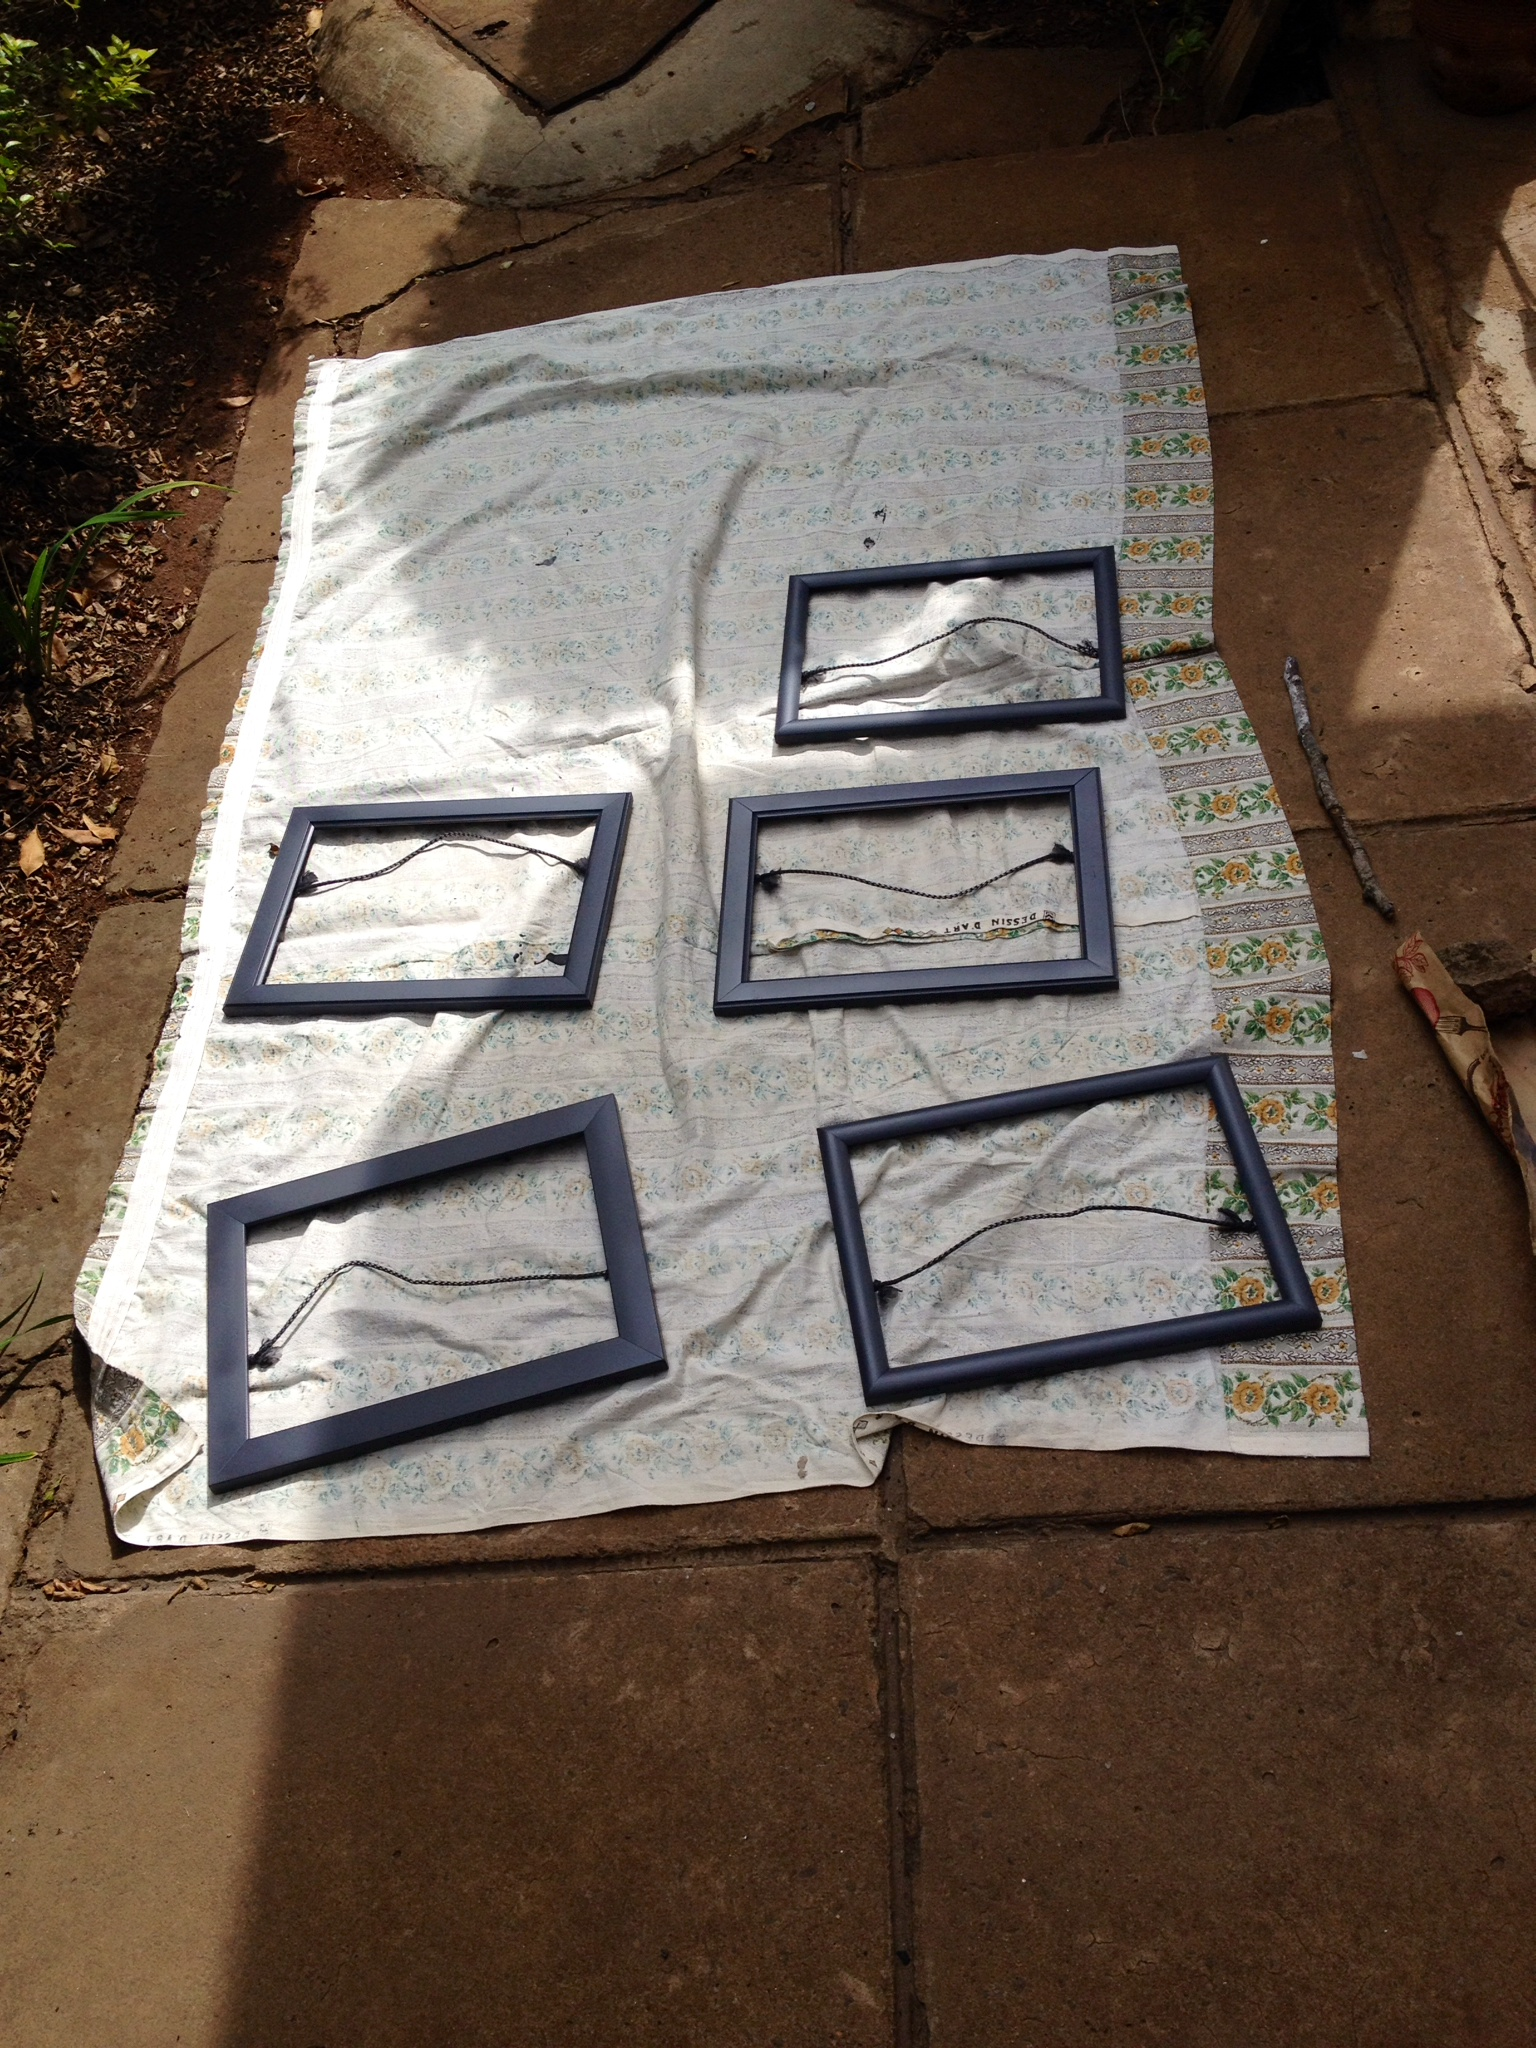 Frames drying outside after being spray painted